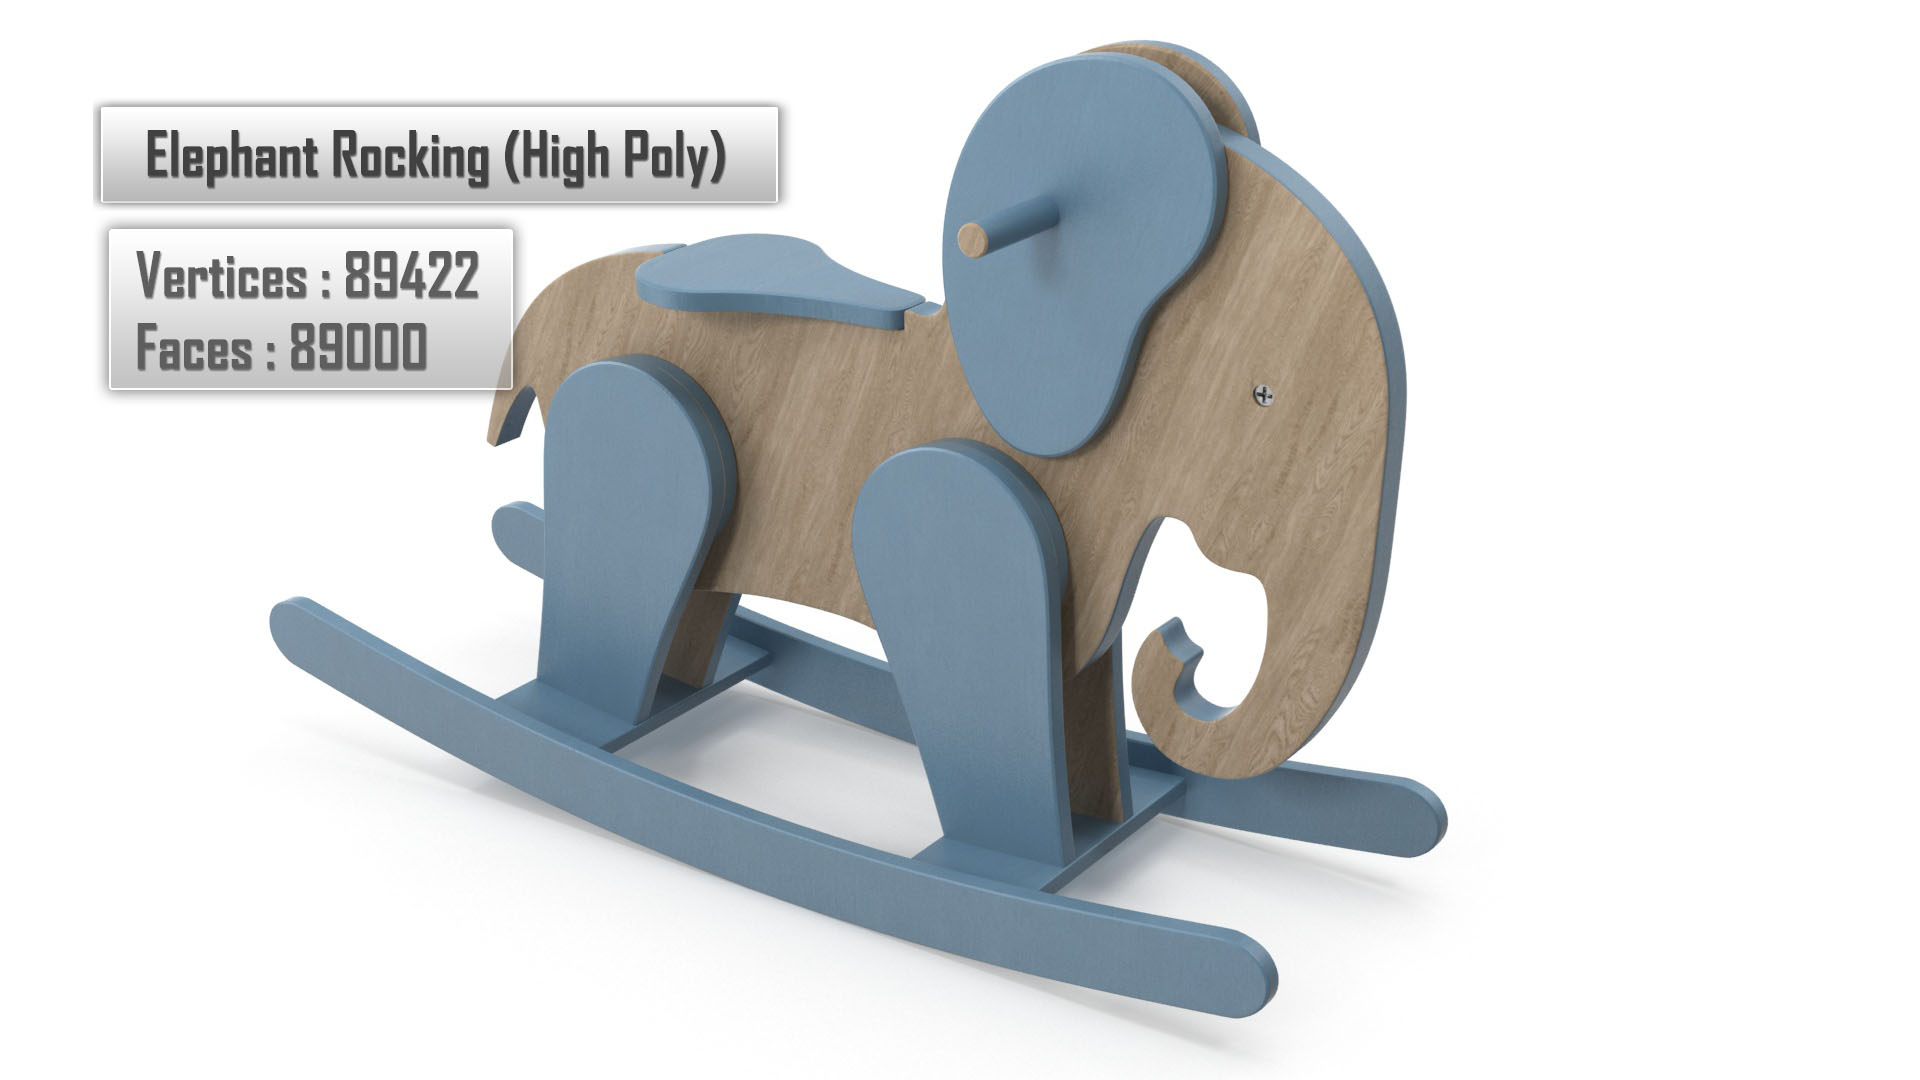 Wondrous Wooden Elephant Rocking Horse Gmtry Best Dining Table And Chair Ideas Images Gmtryco